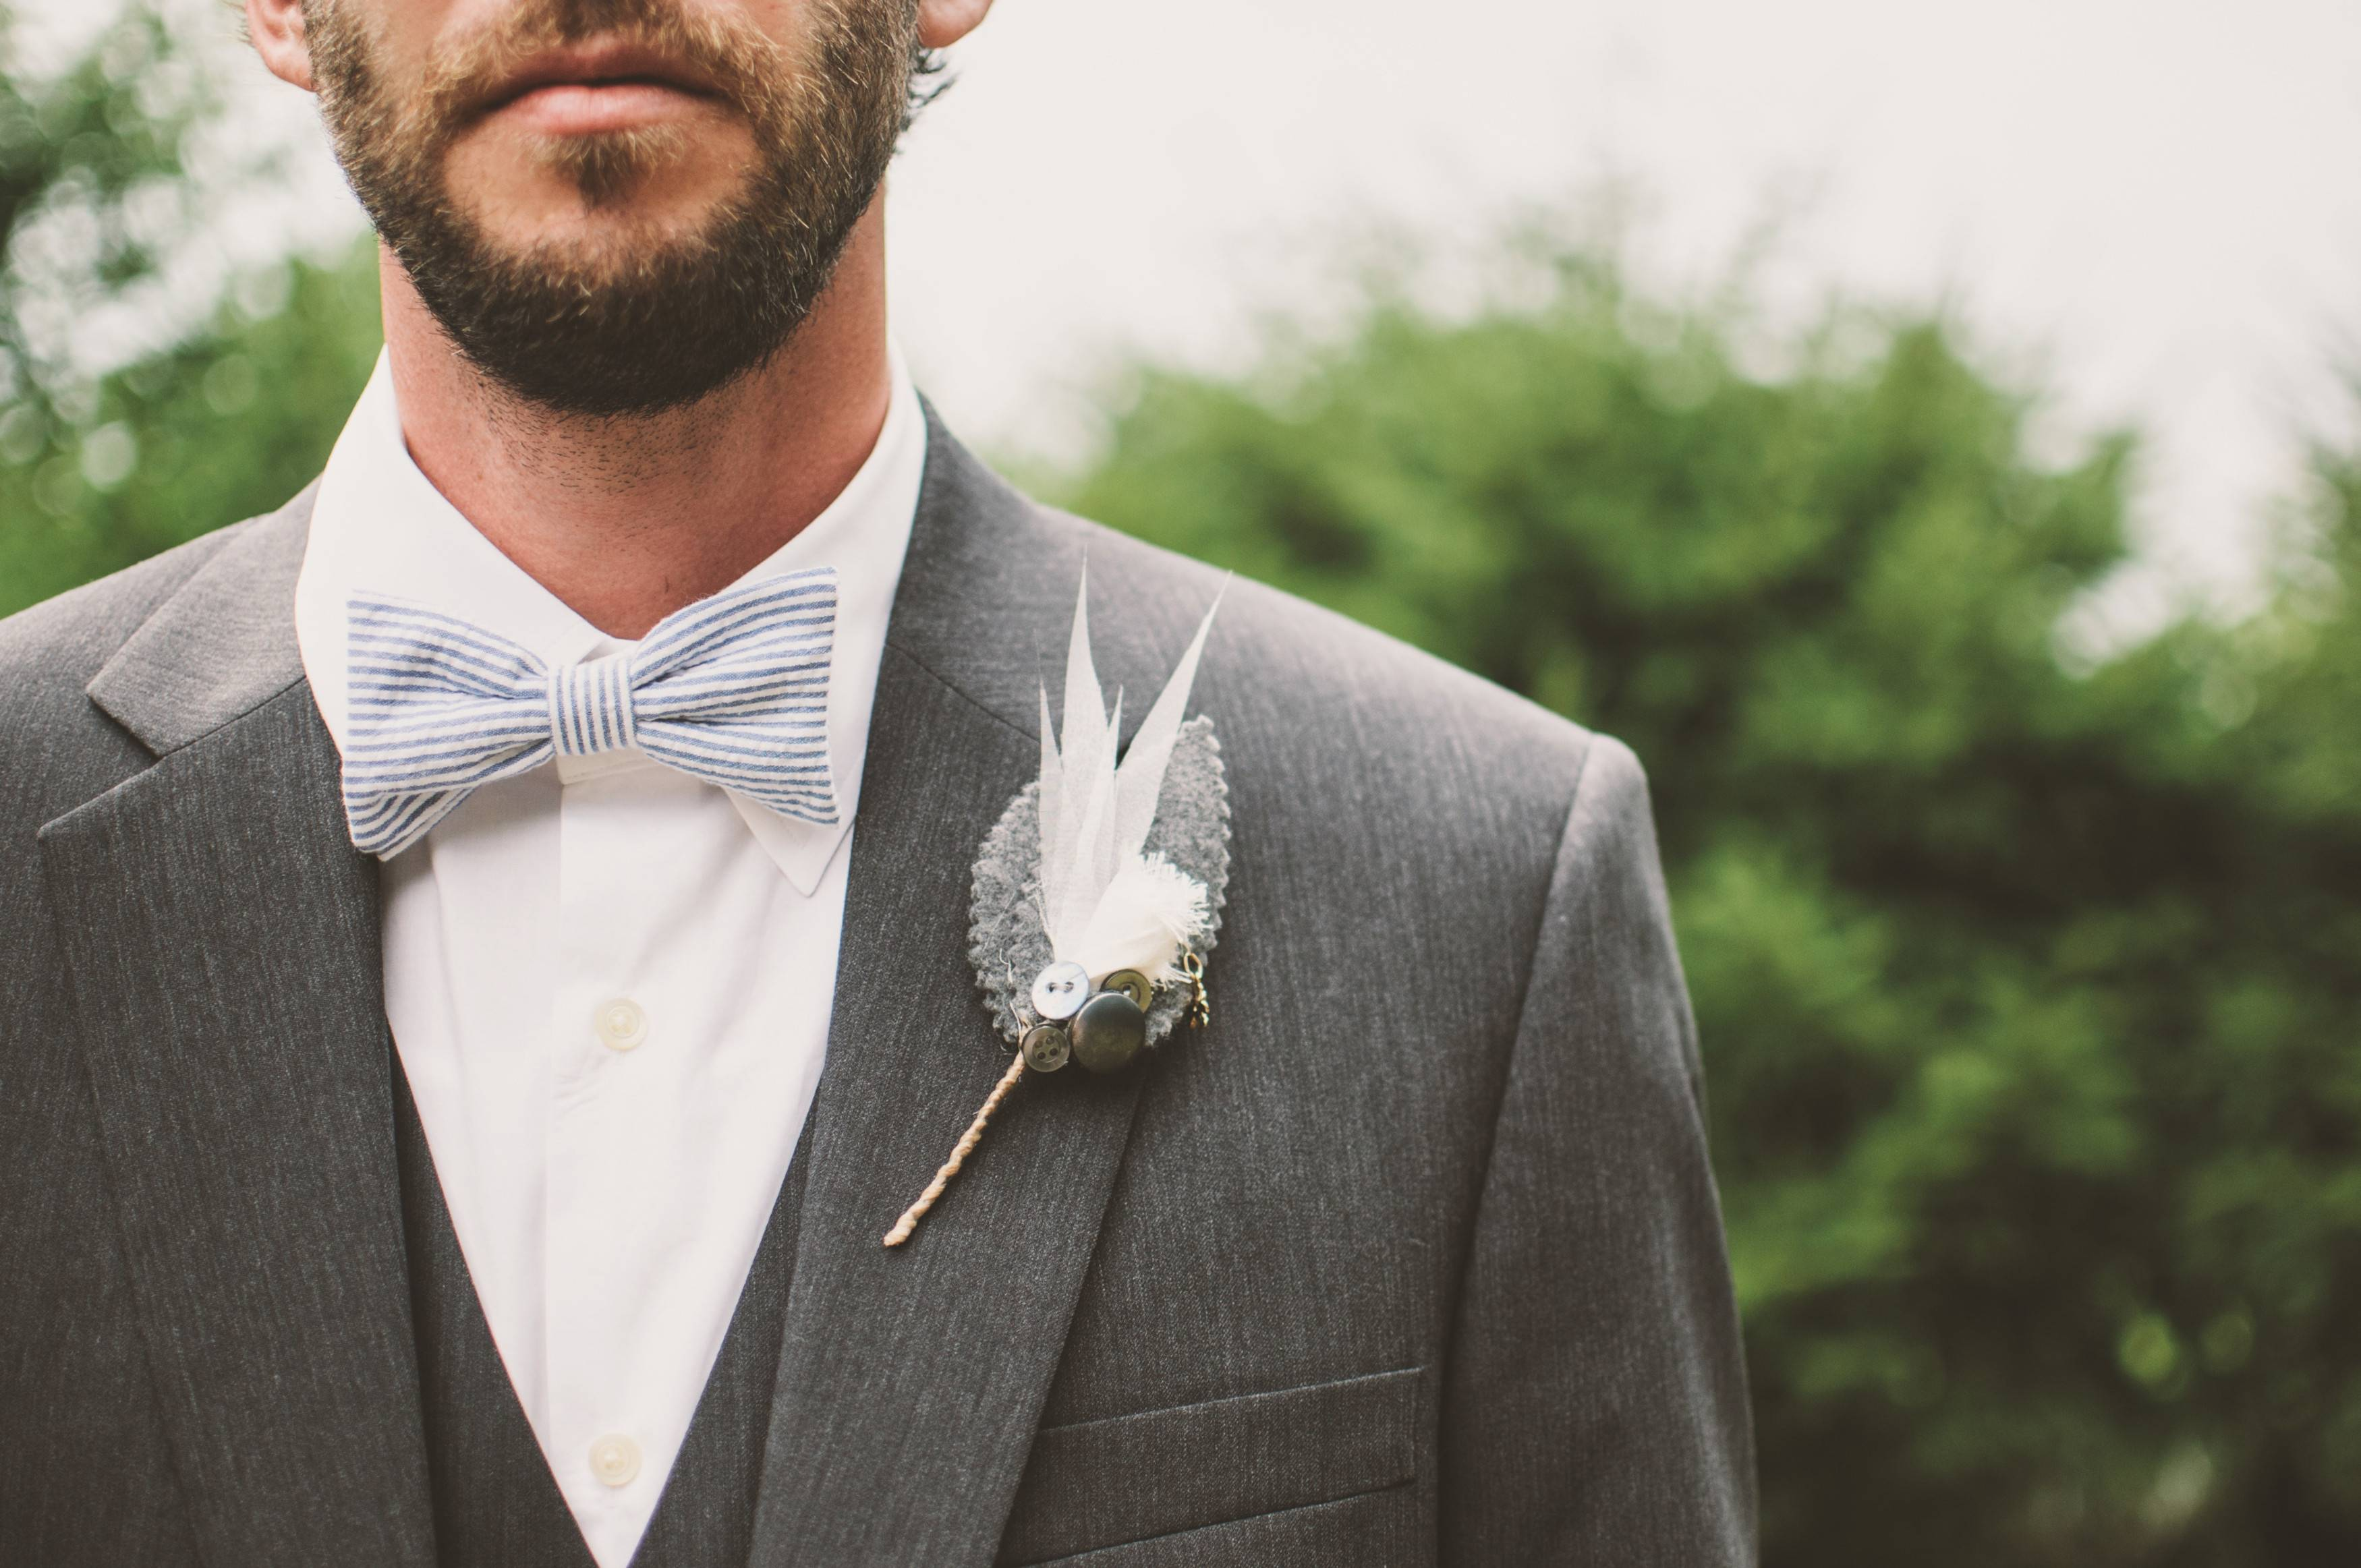 7 Things Every Man Needs to Know before Marriage